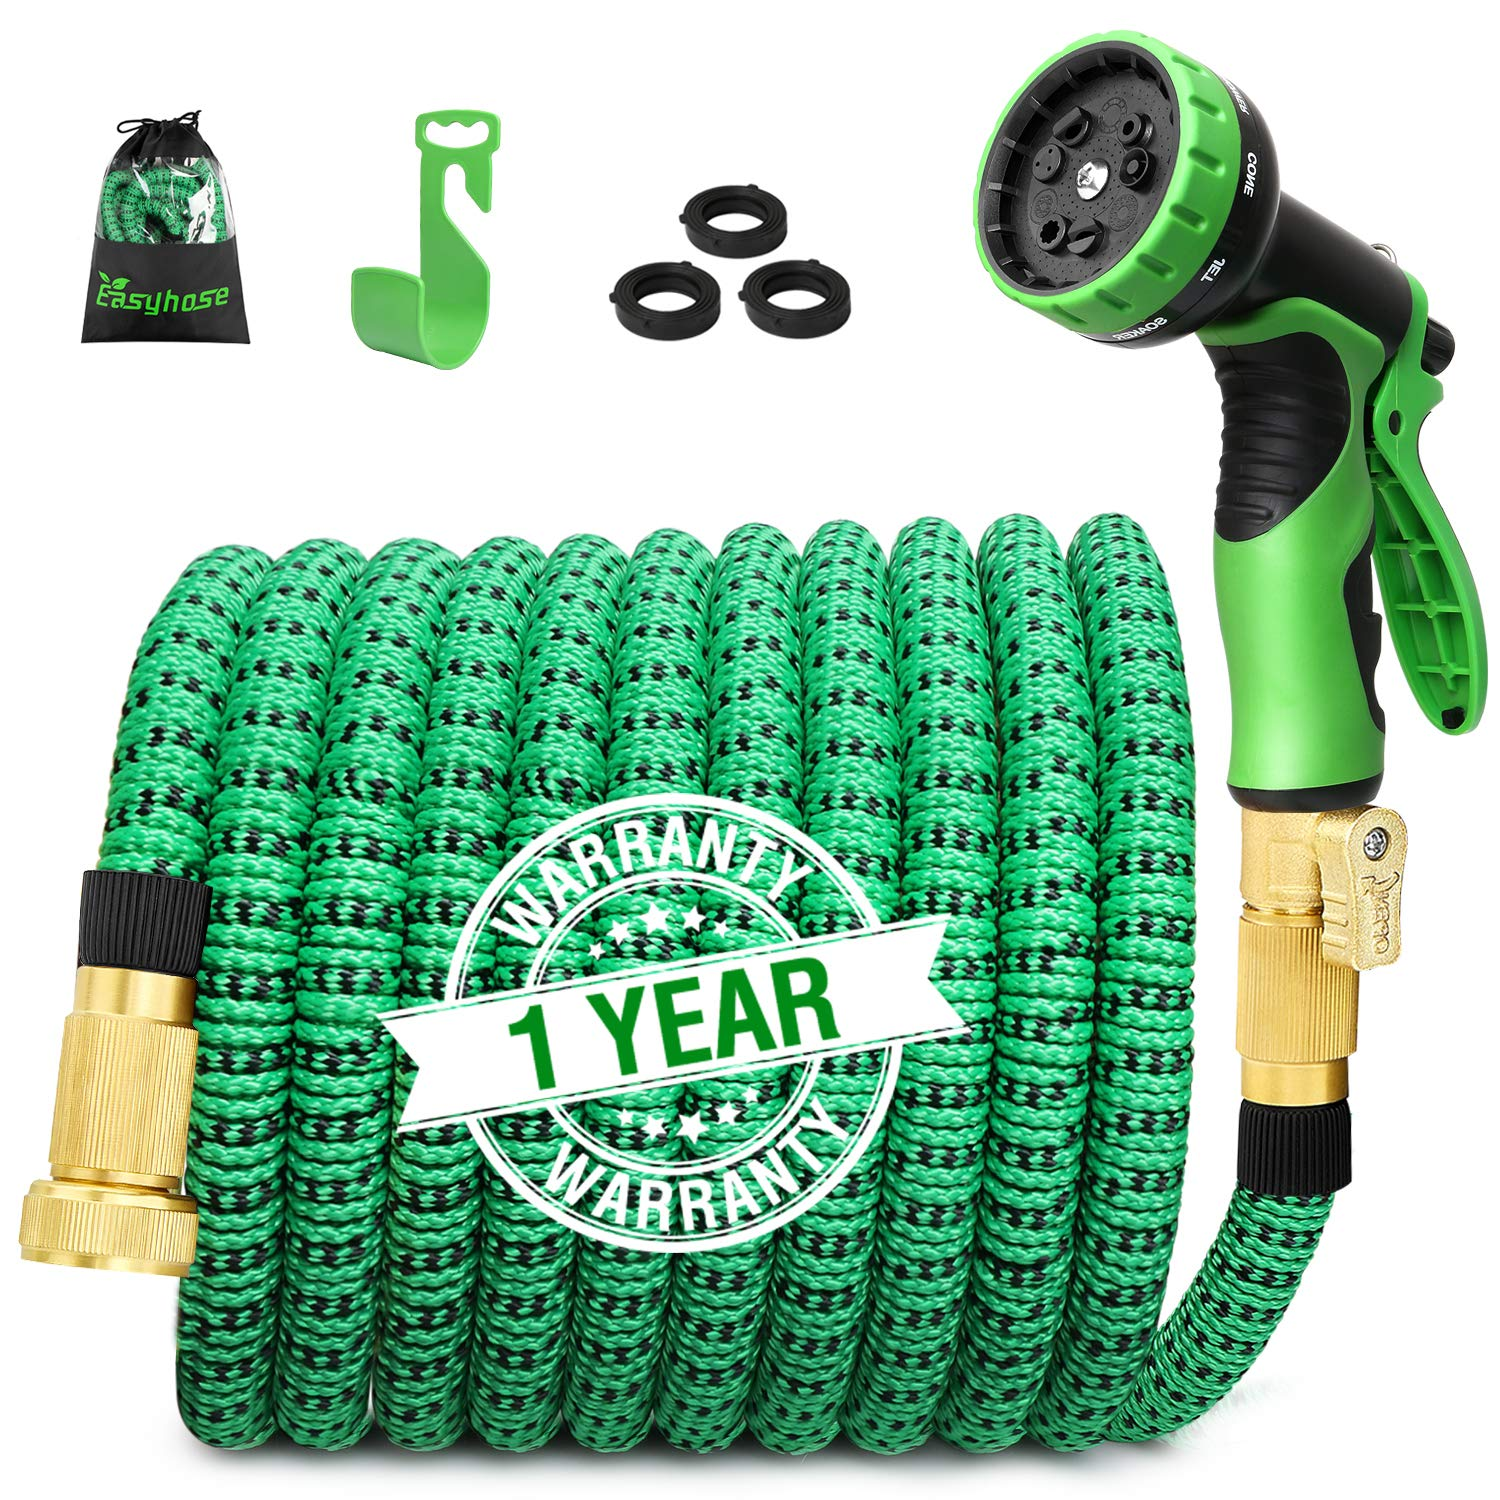 100ft Expandable Garden Hose, Expanding Water Hose with 3/4 inch Strong Solid Brass & 9 Function Nozzle , Expandable Hoses No-kink Leaking Flexible Lightweight Gardening Hose Outdoor Yard Hoses